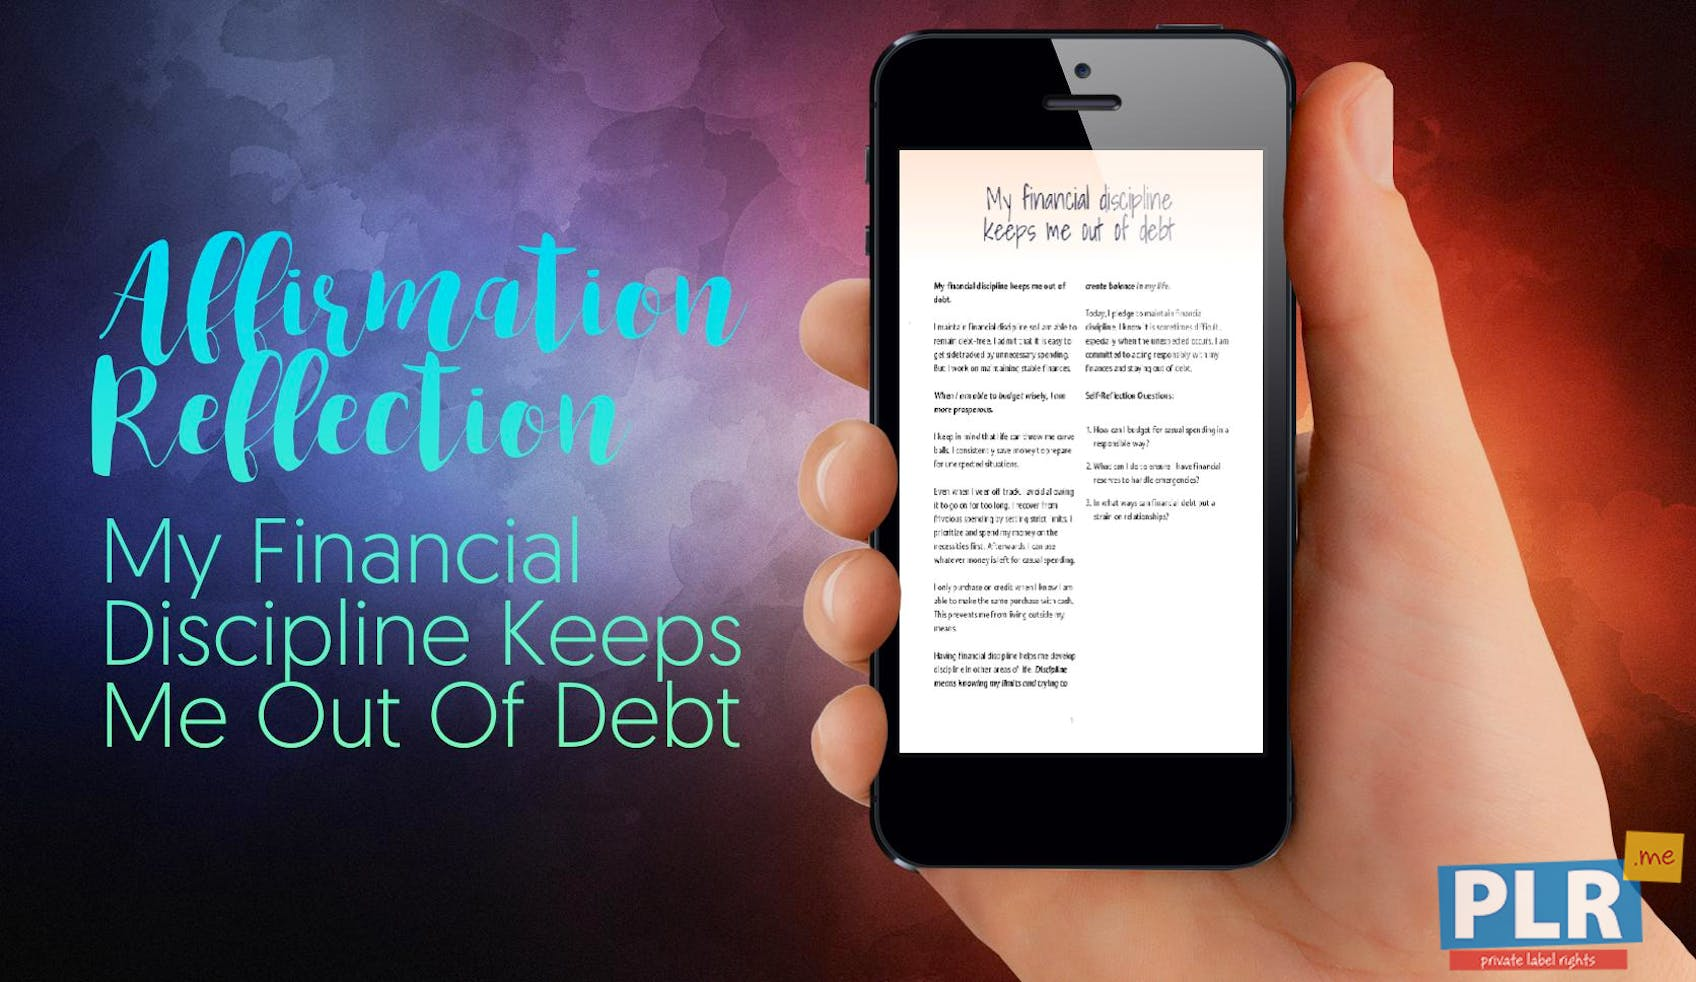 My Financial Discipline Keeps Me Out Of Debt